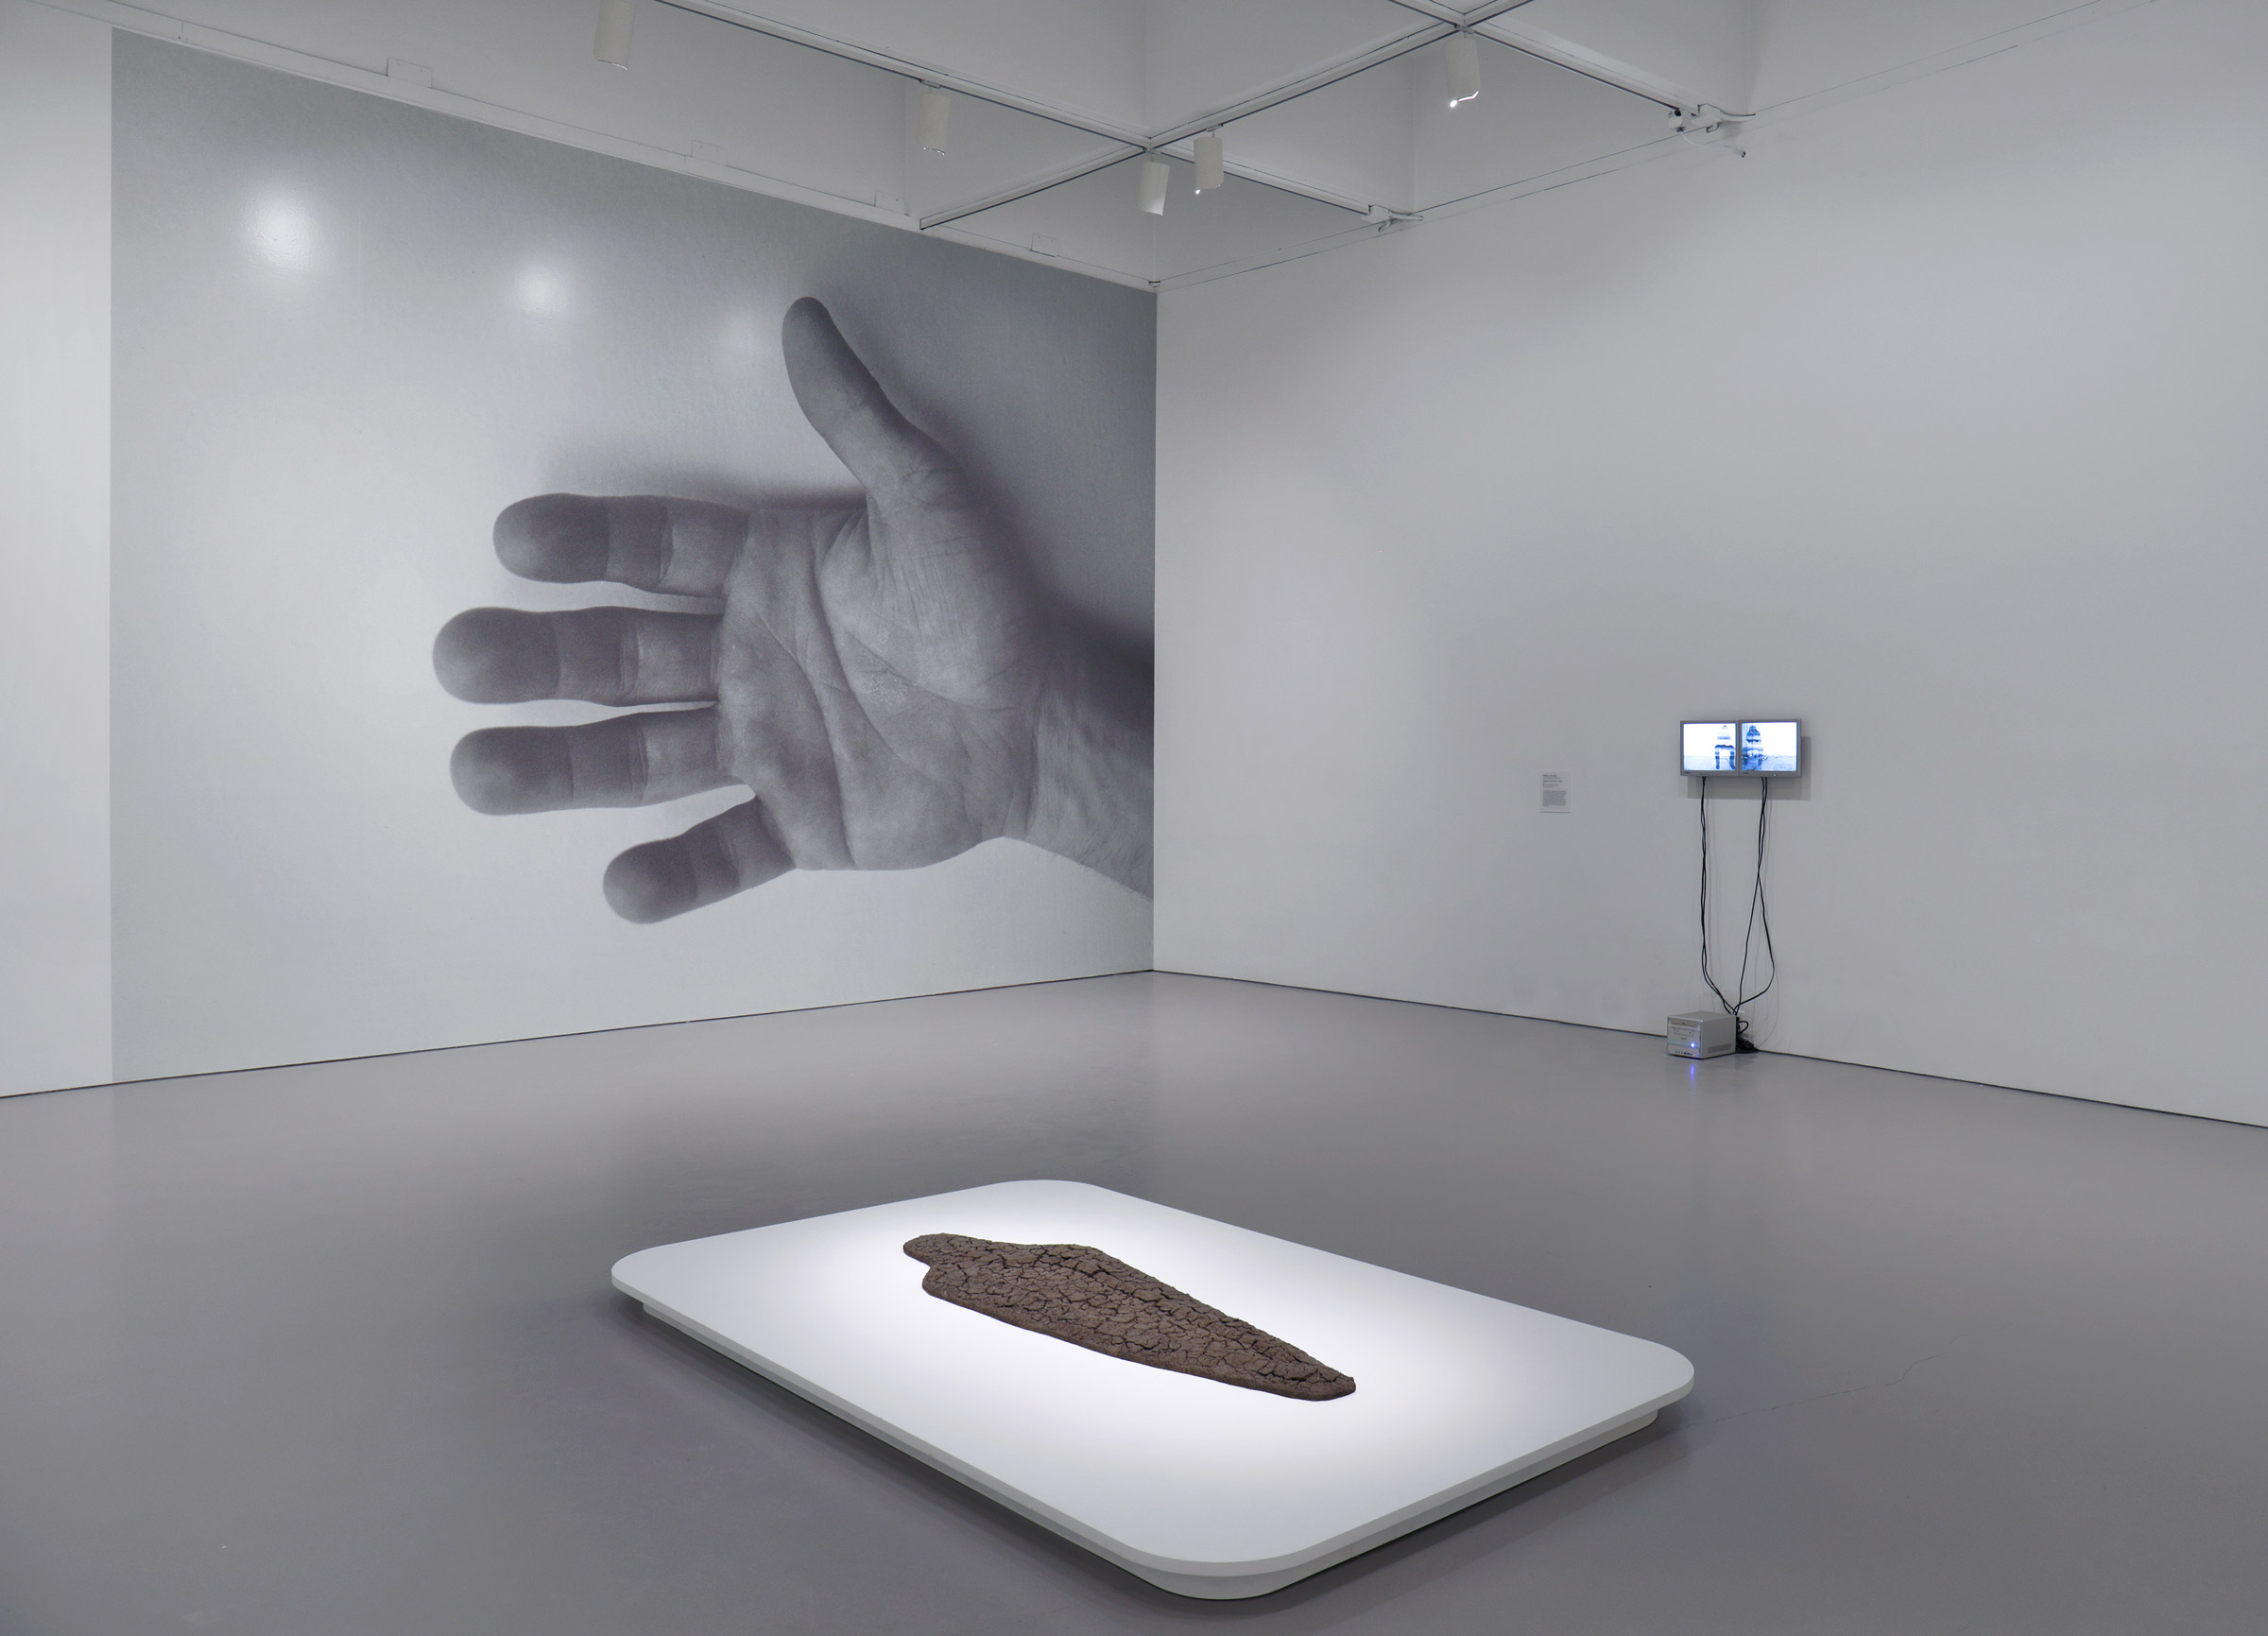 Installation view of What Absence is Made Of